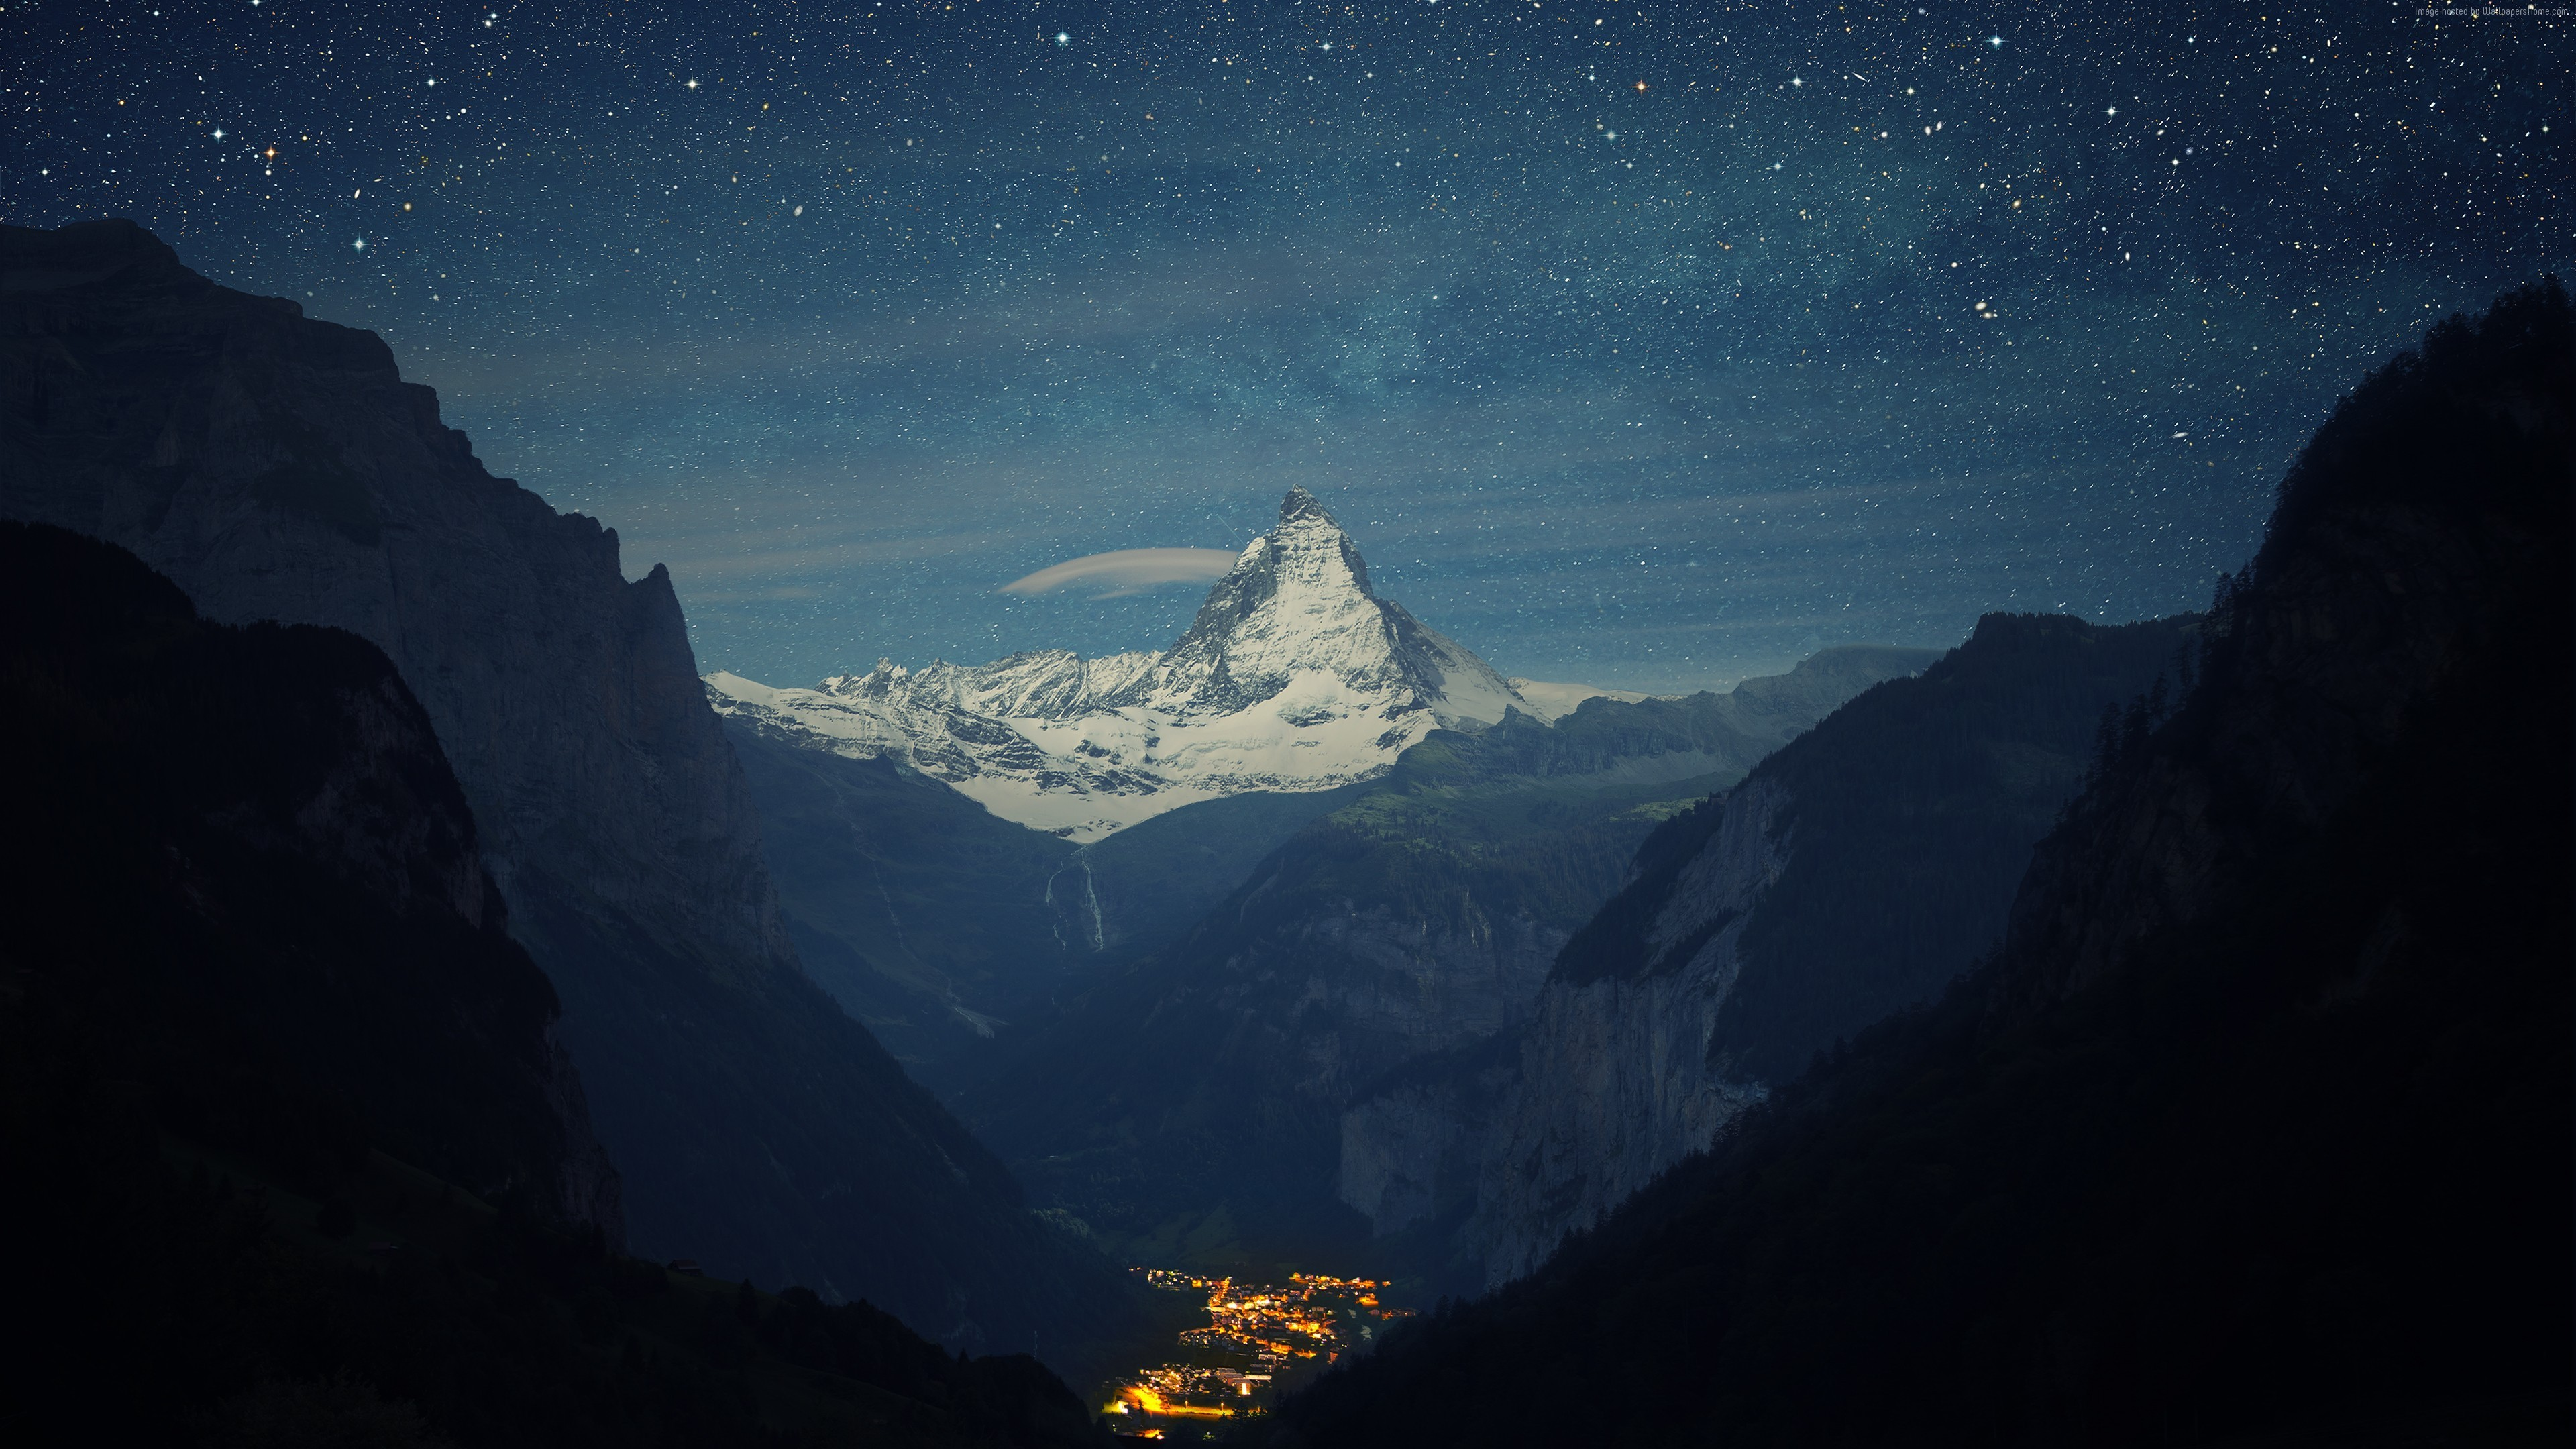 Wallpaper Zermatt-Matterhorn, Switzerland, Europe, 4K, Travel